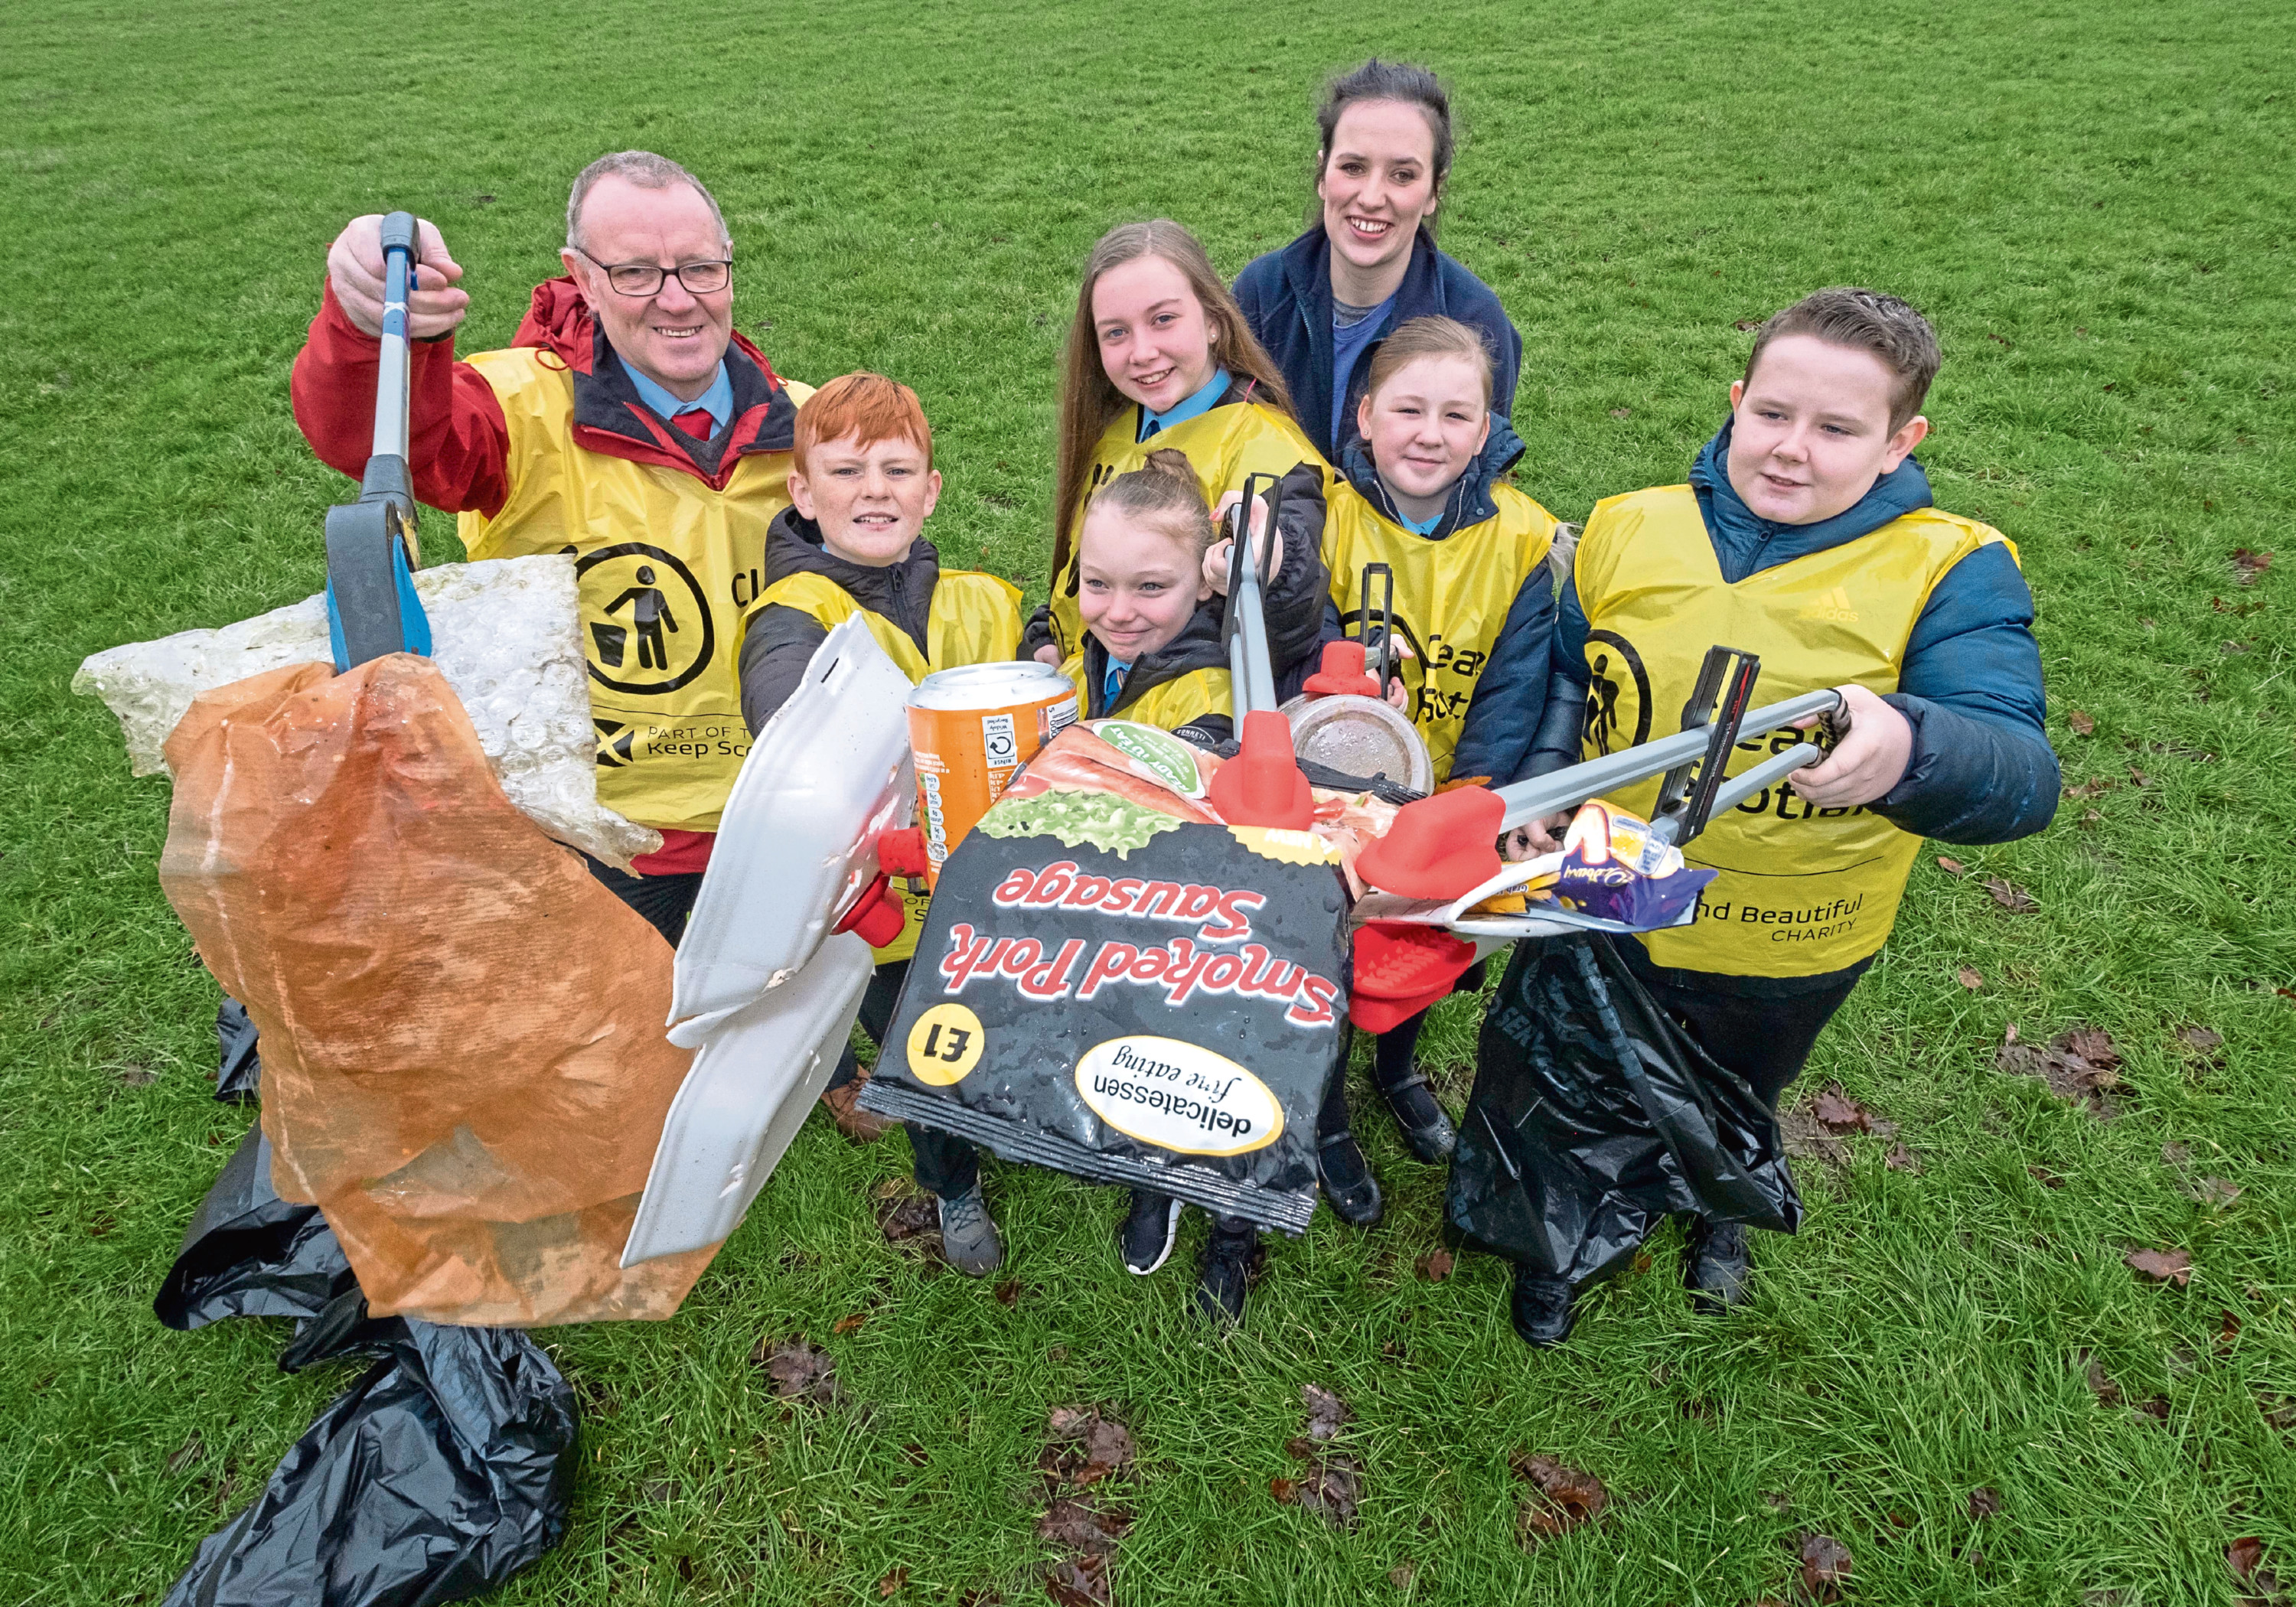 Keep Scotland Beautiful is urging people in Aberdeen to take part in their Clean Up Scotland scheme